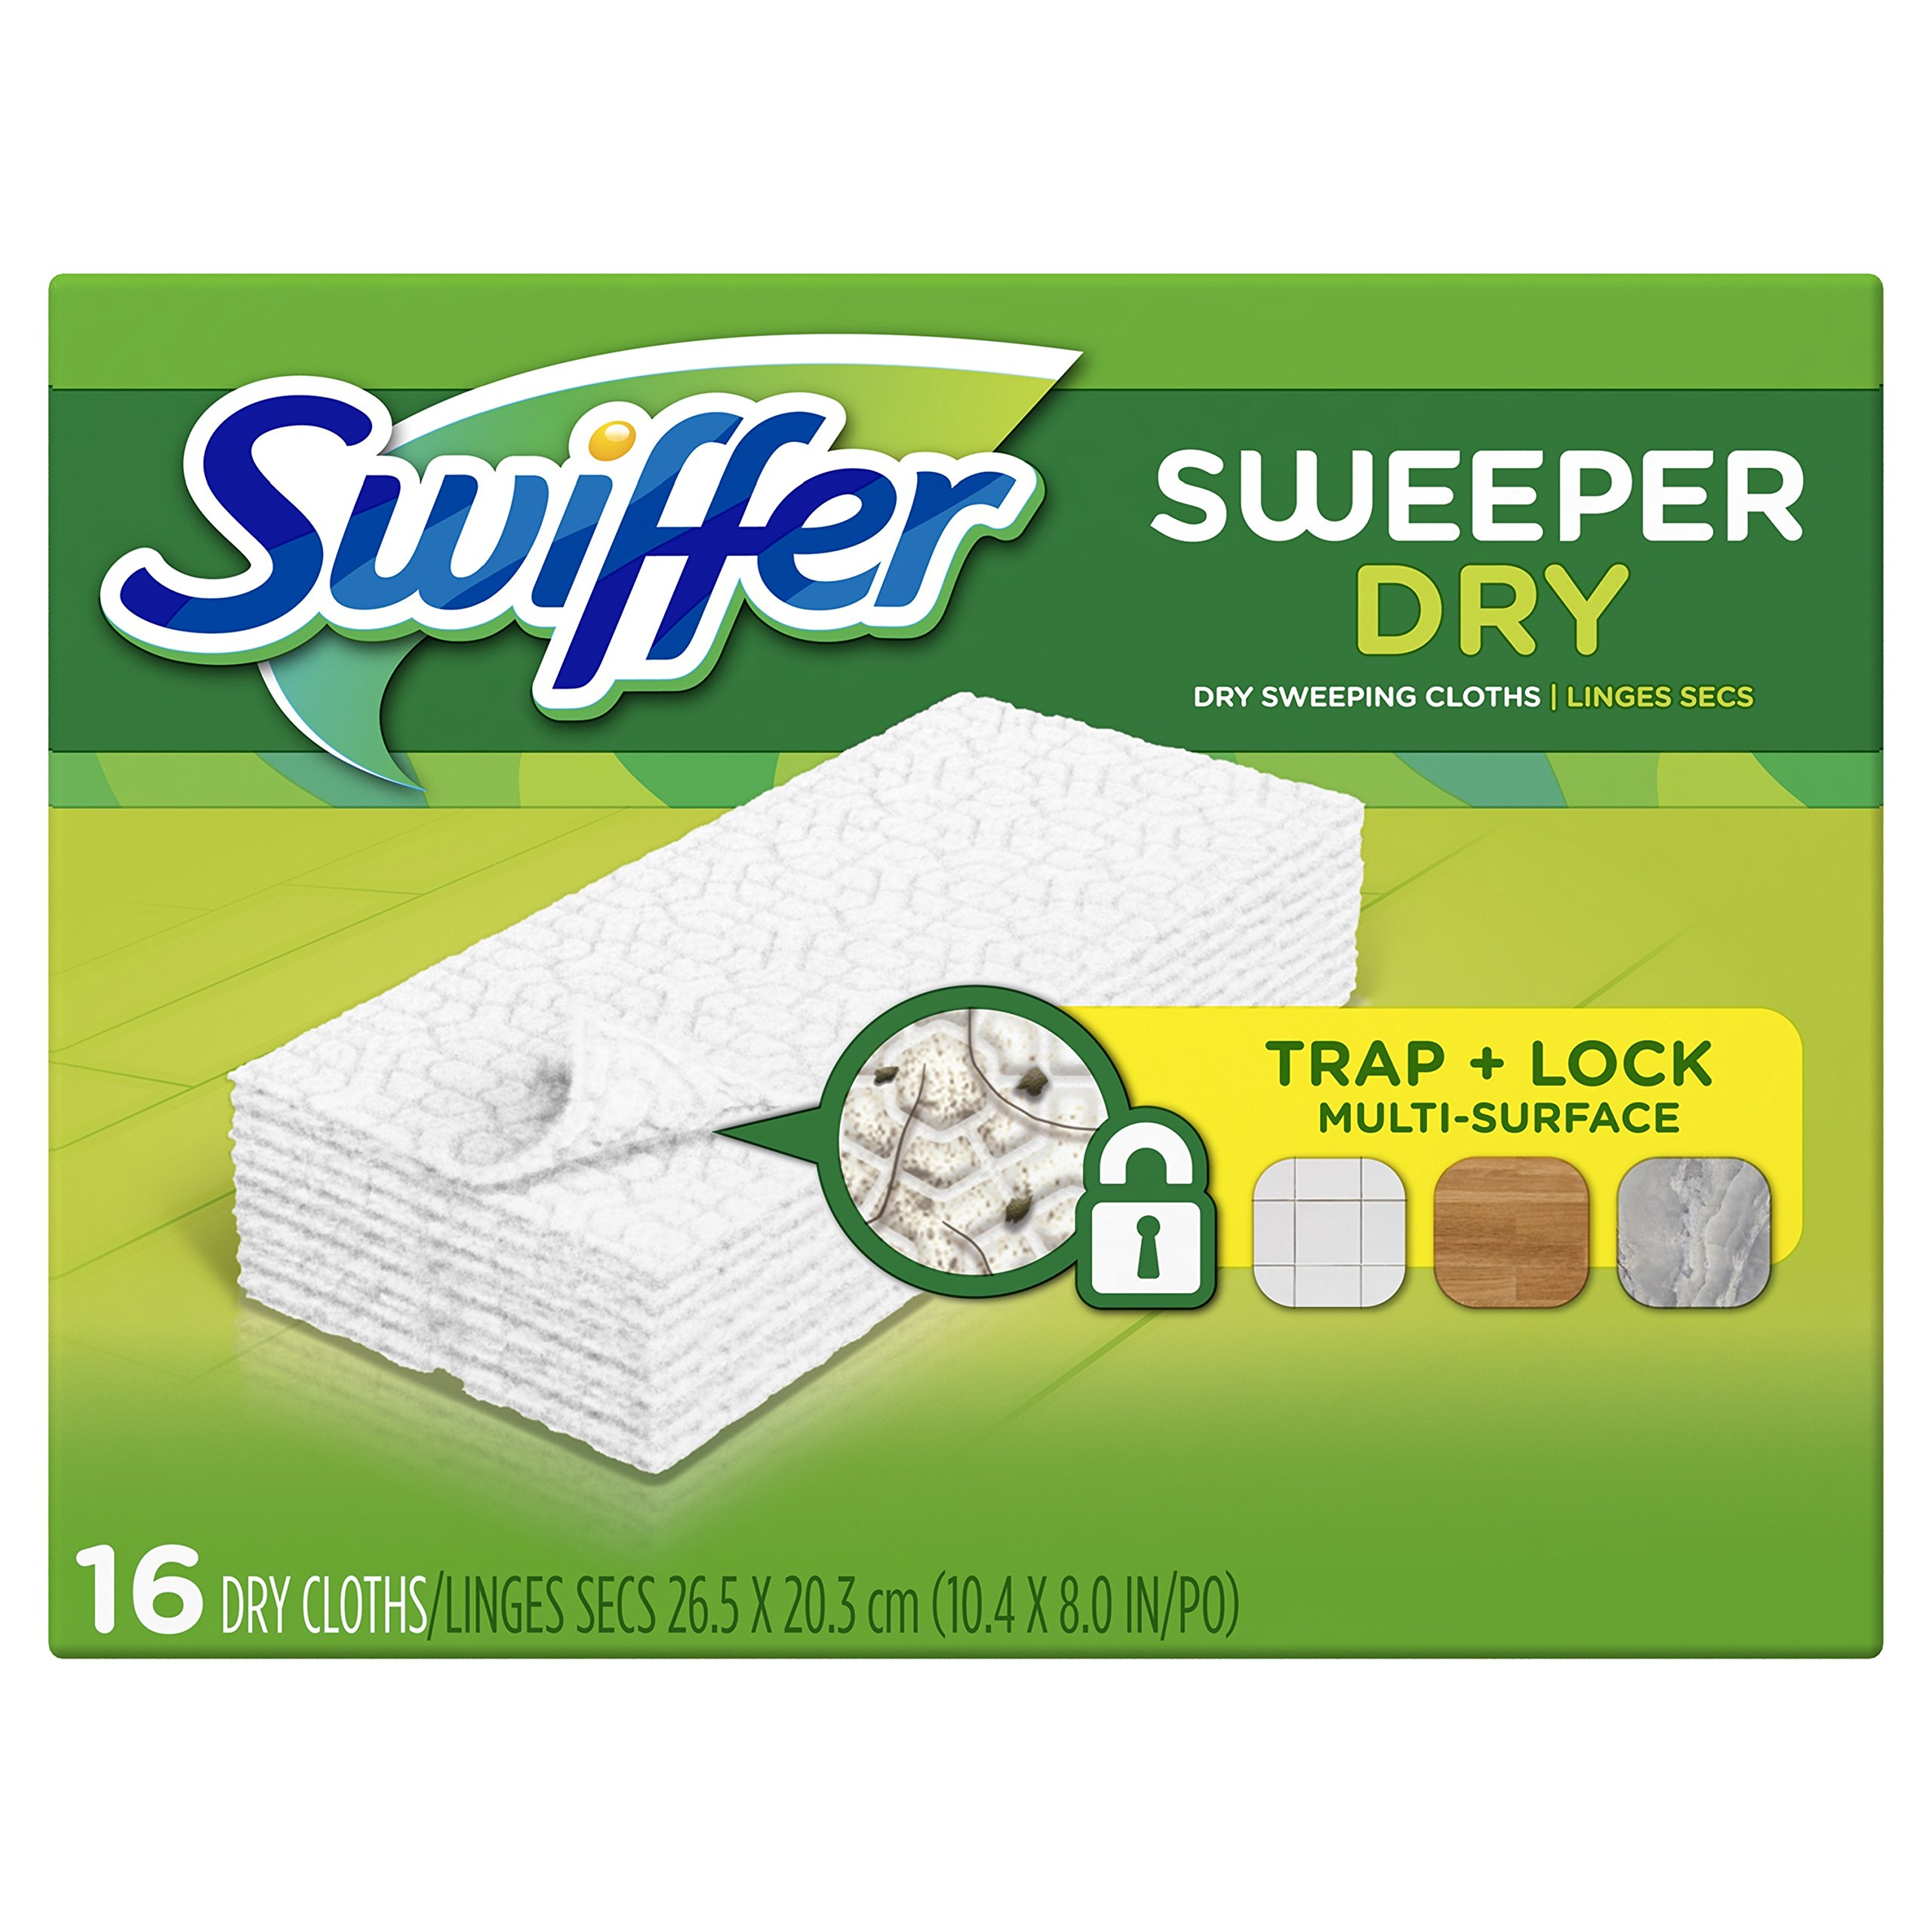 Swiffer Sweeper Dry Sweeping Pad Refills, Hardwood Floor Mop Cleaner Cloth Refill, Unscented, 16 Count (Pack of 12)